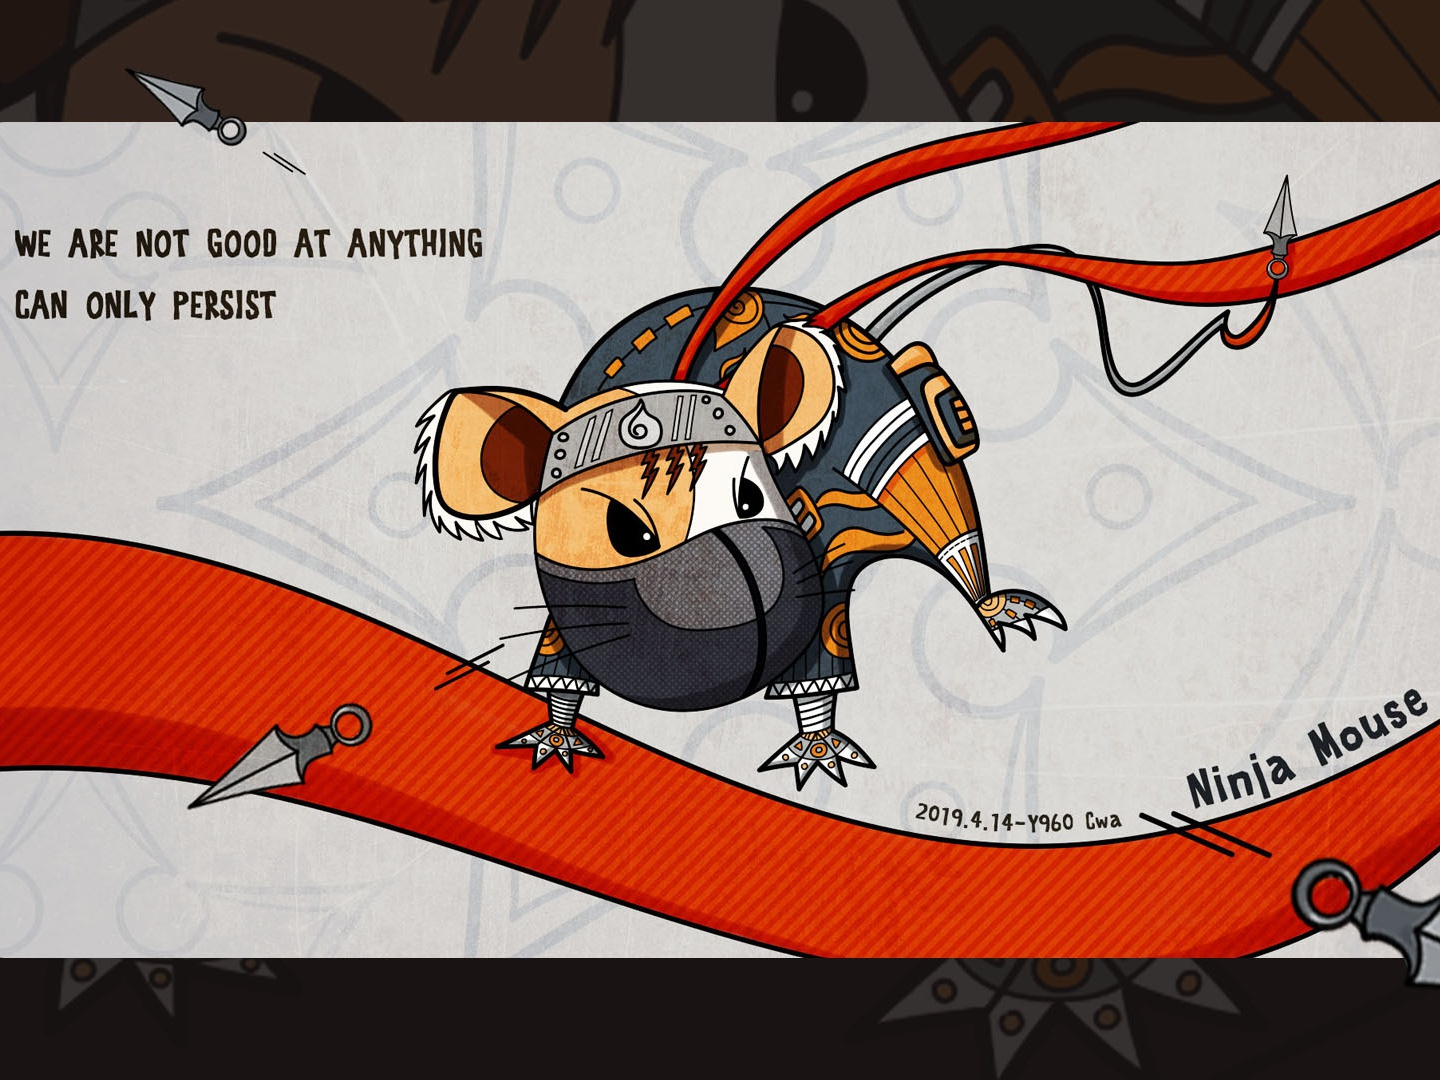 Ninja Mouse by Cwa on Dribbble